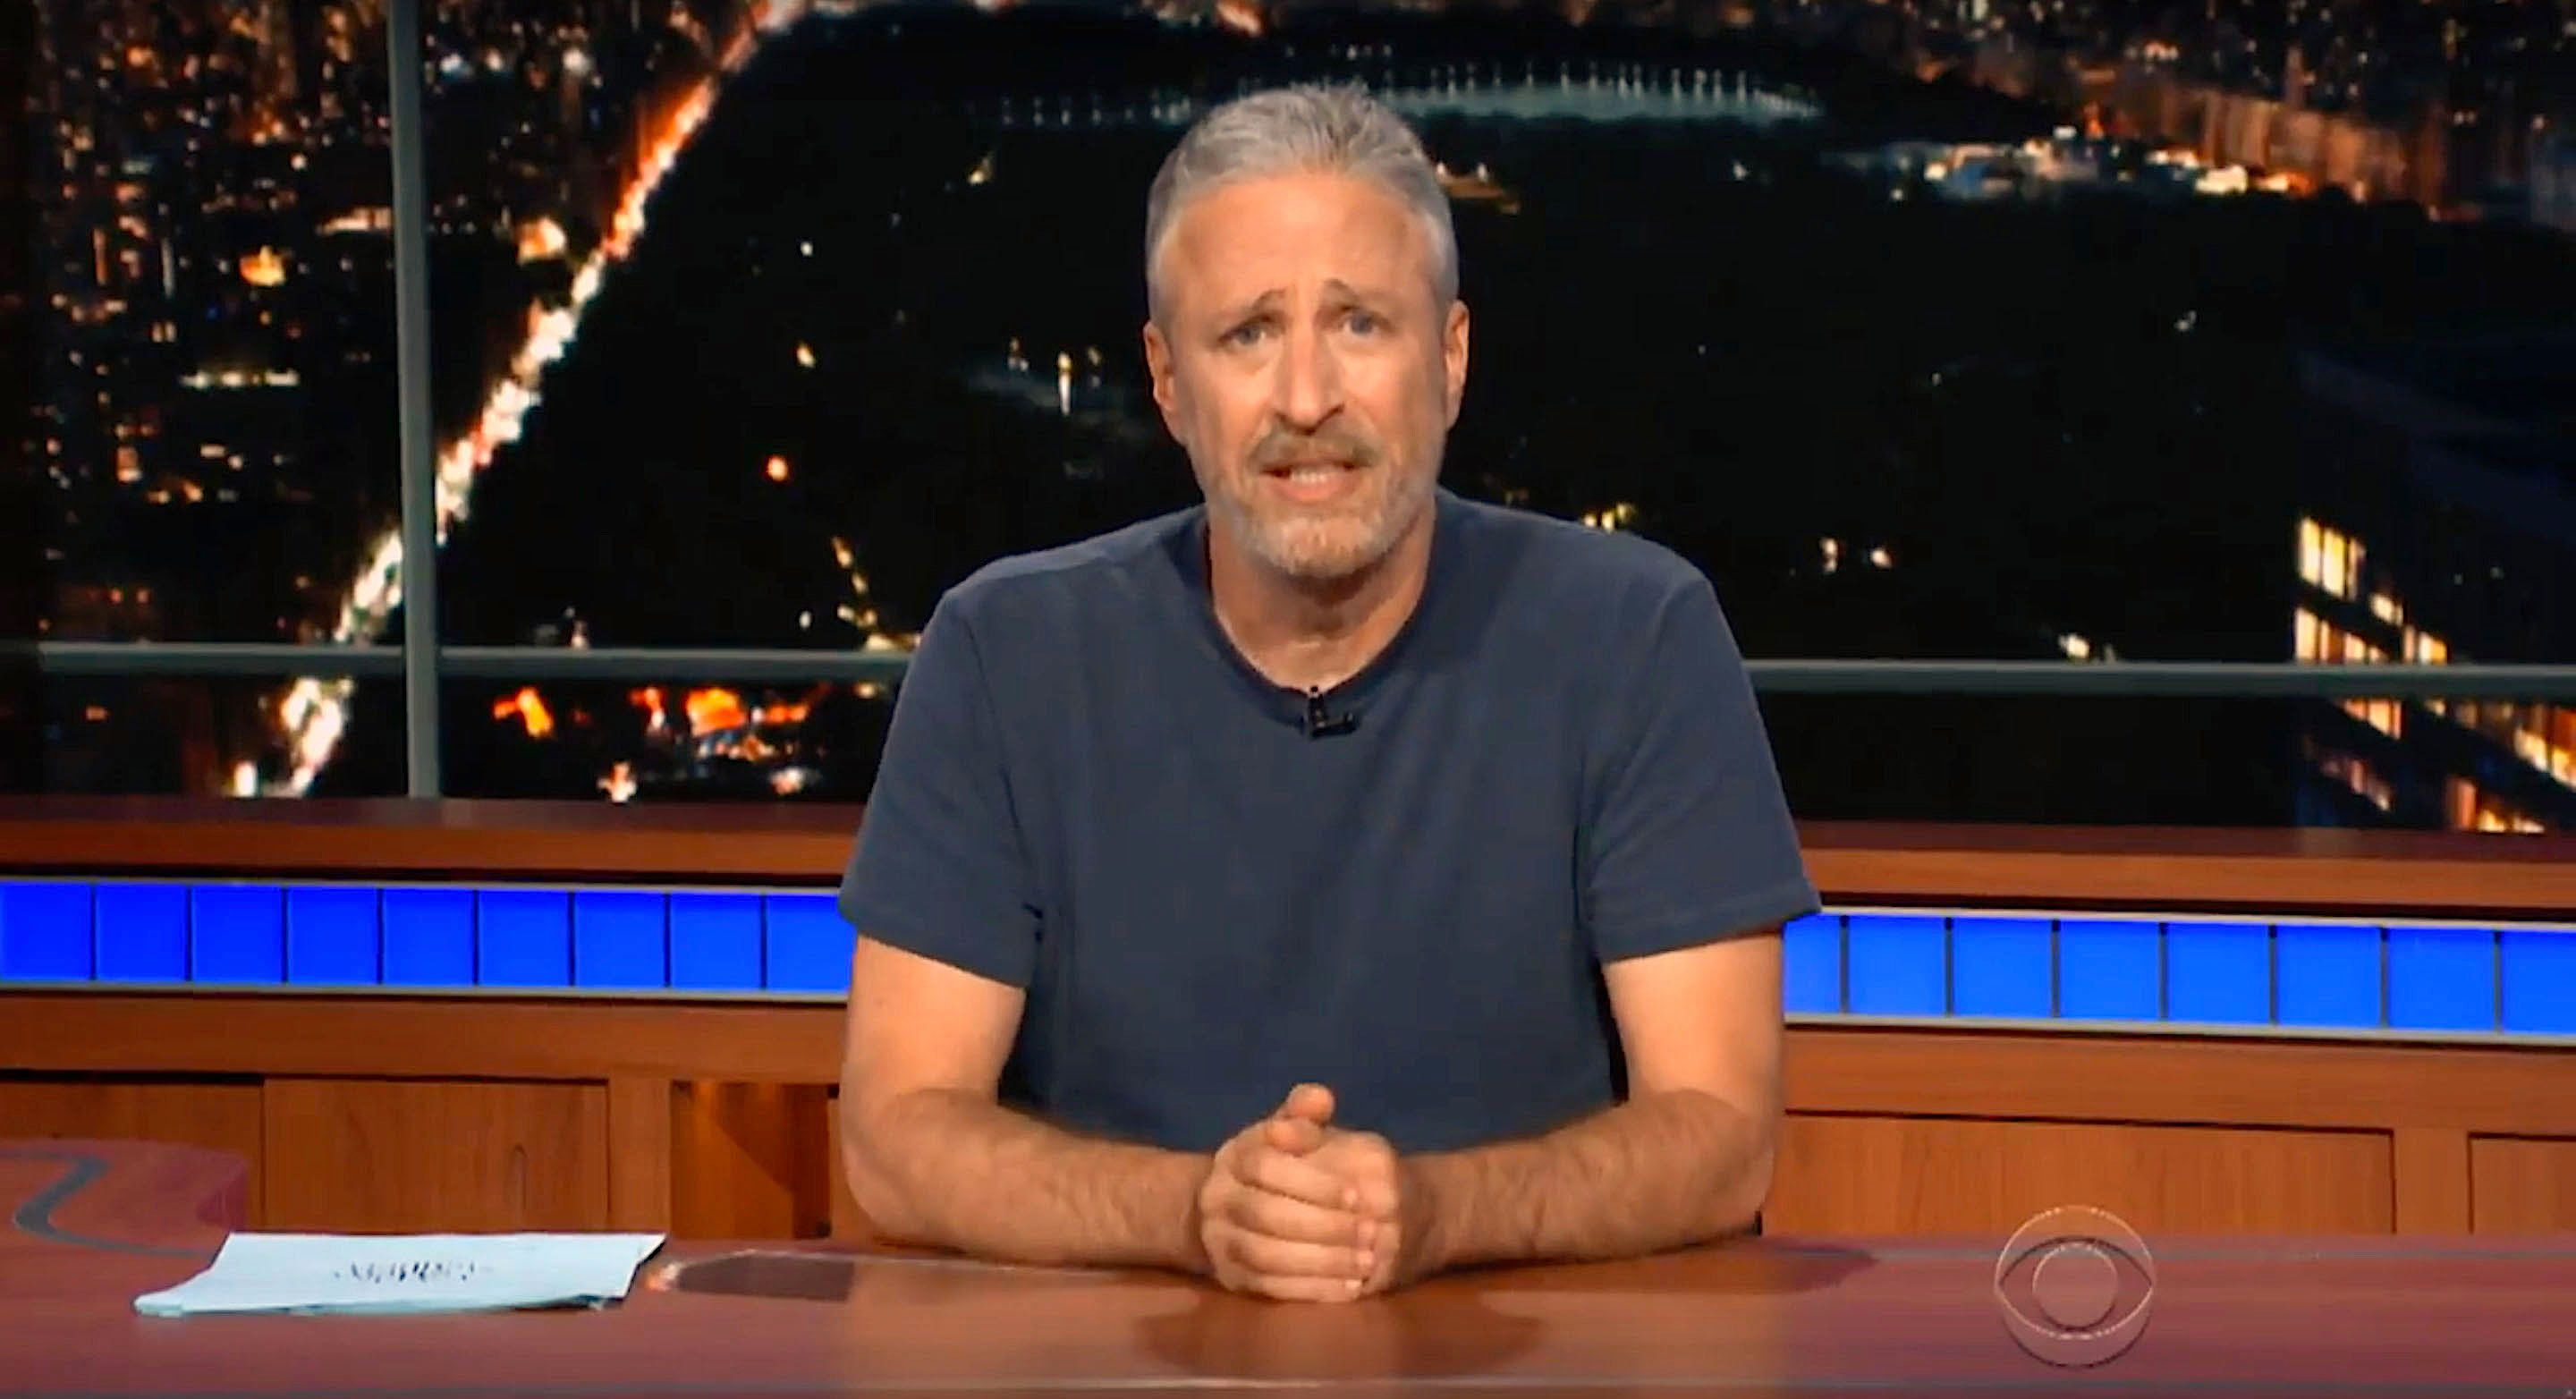 Jon Stewart takes over the desk at The Late Show to make a plea to President Donald Trump